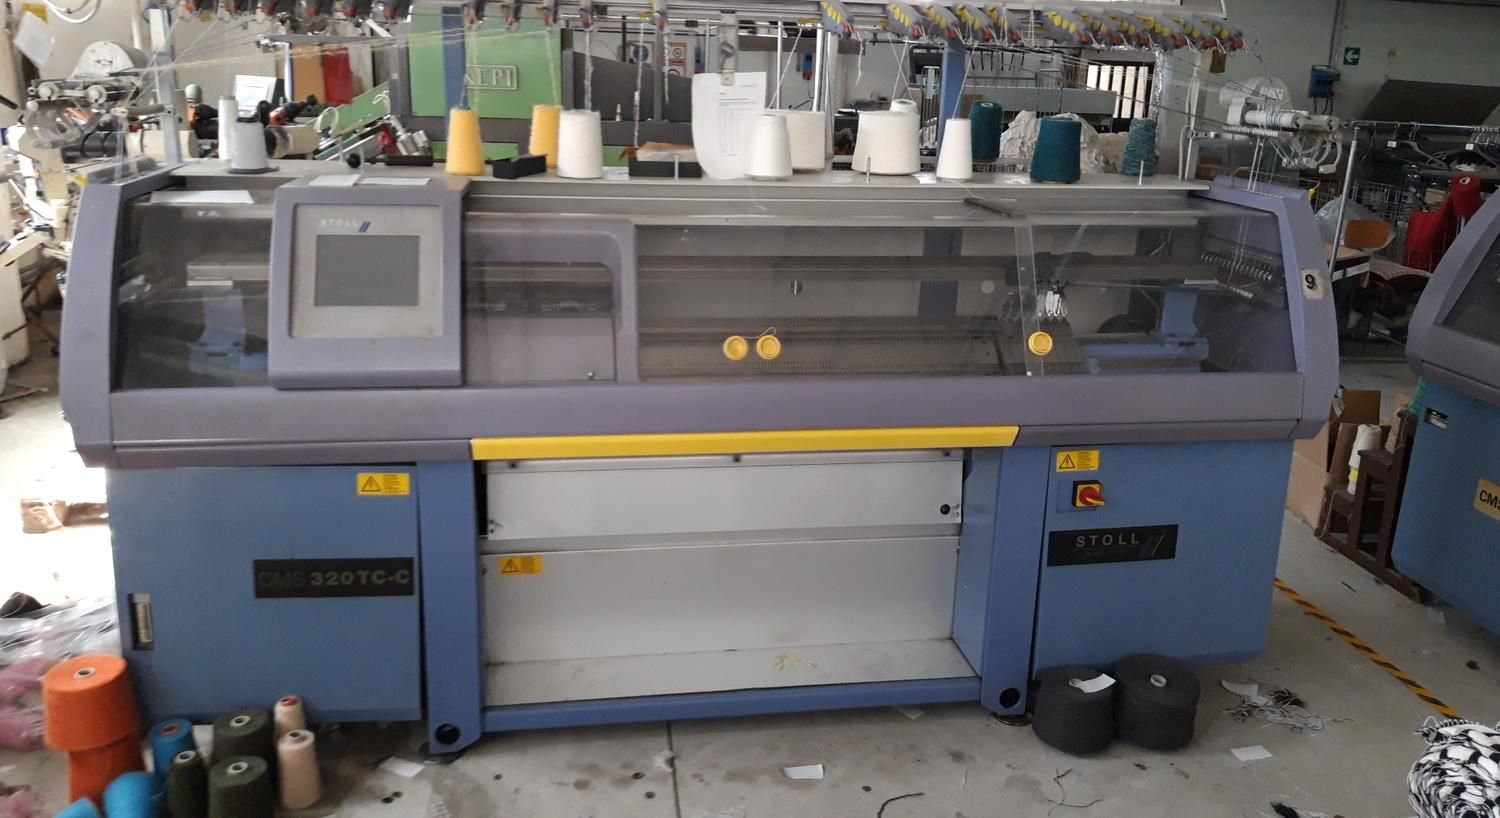 Stoll 320TC-C Strickmaschine